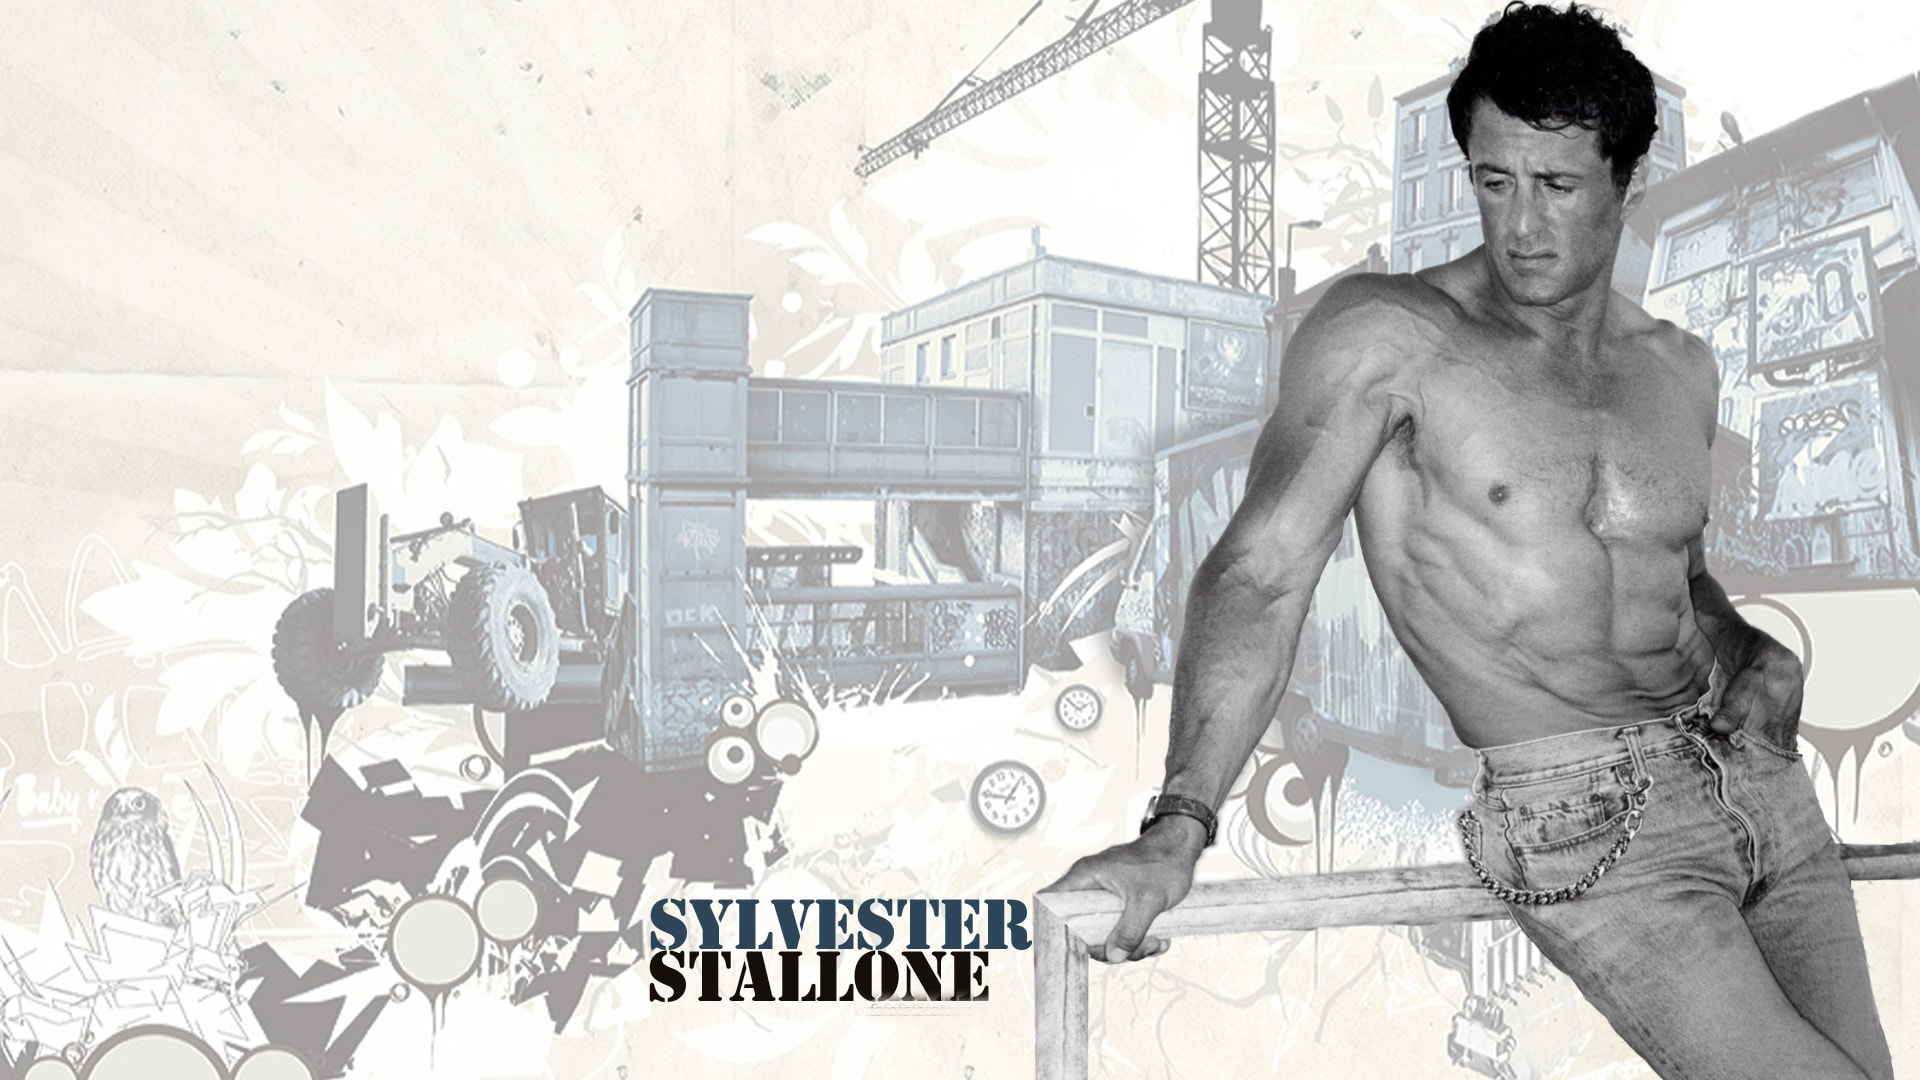 sylvester stallone hd desktop wallpapers | 7wallpapers